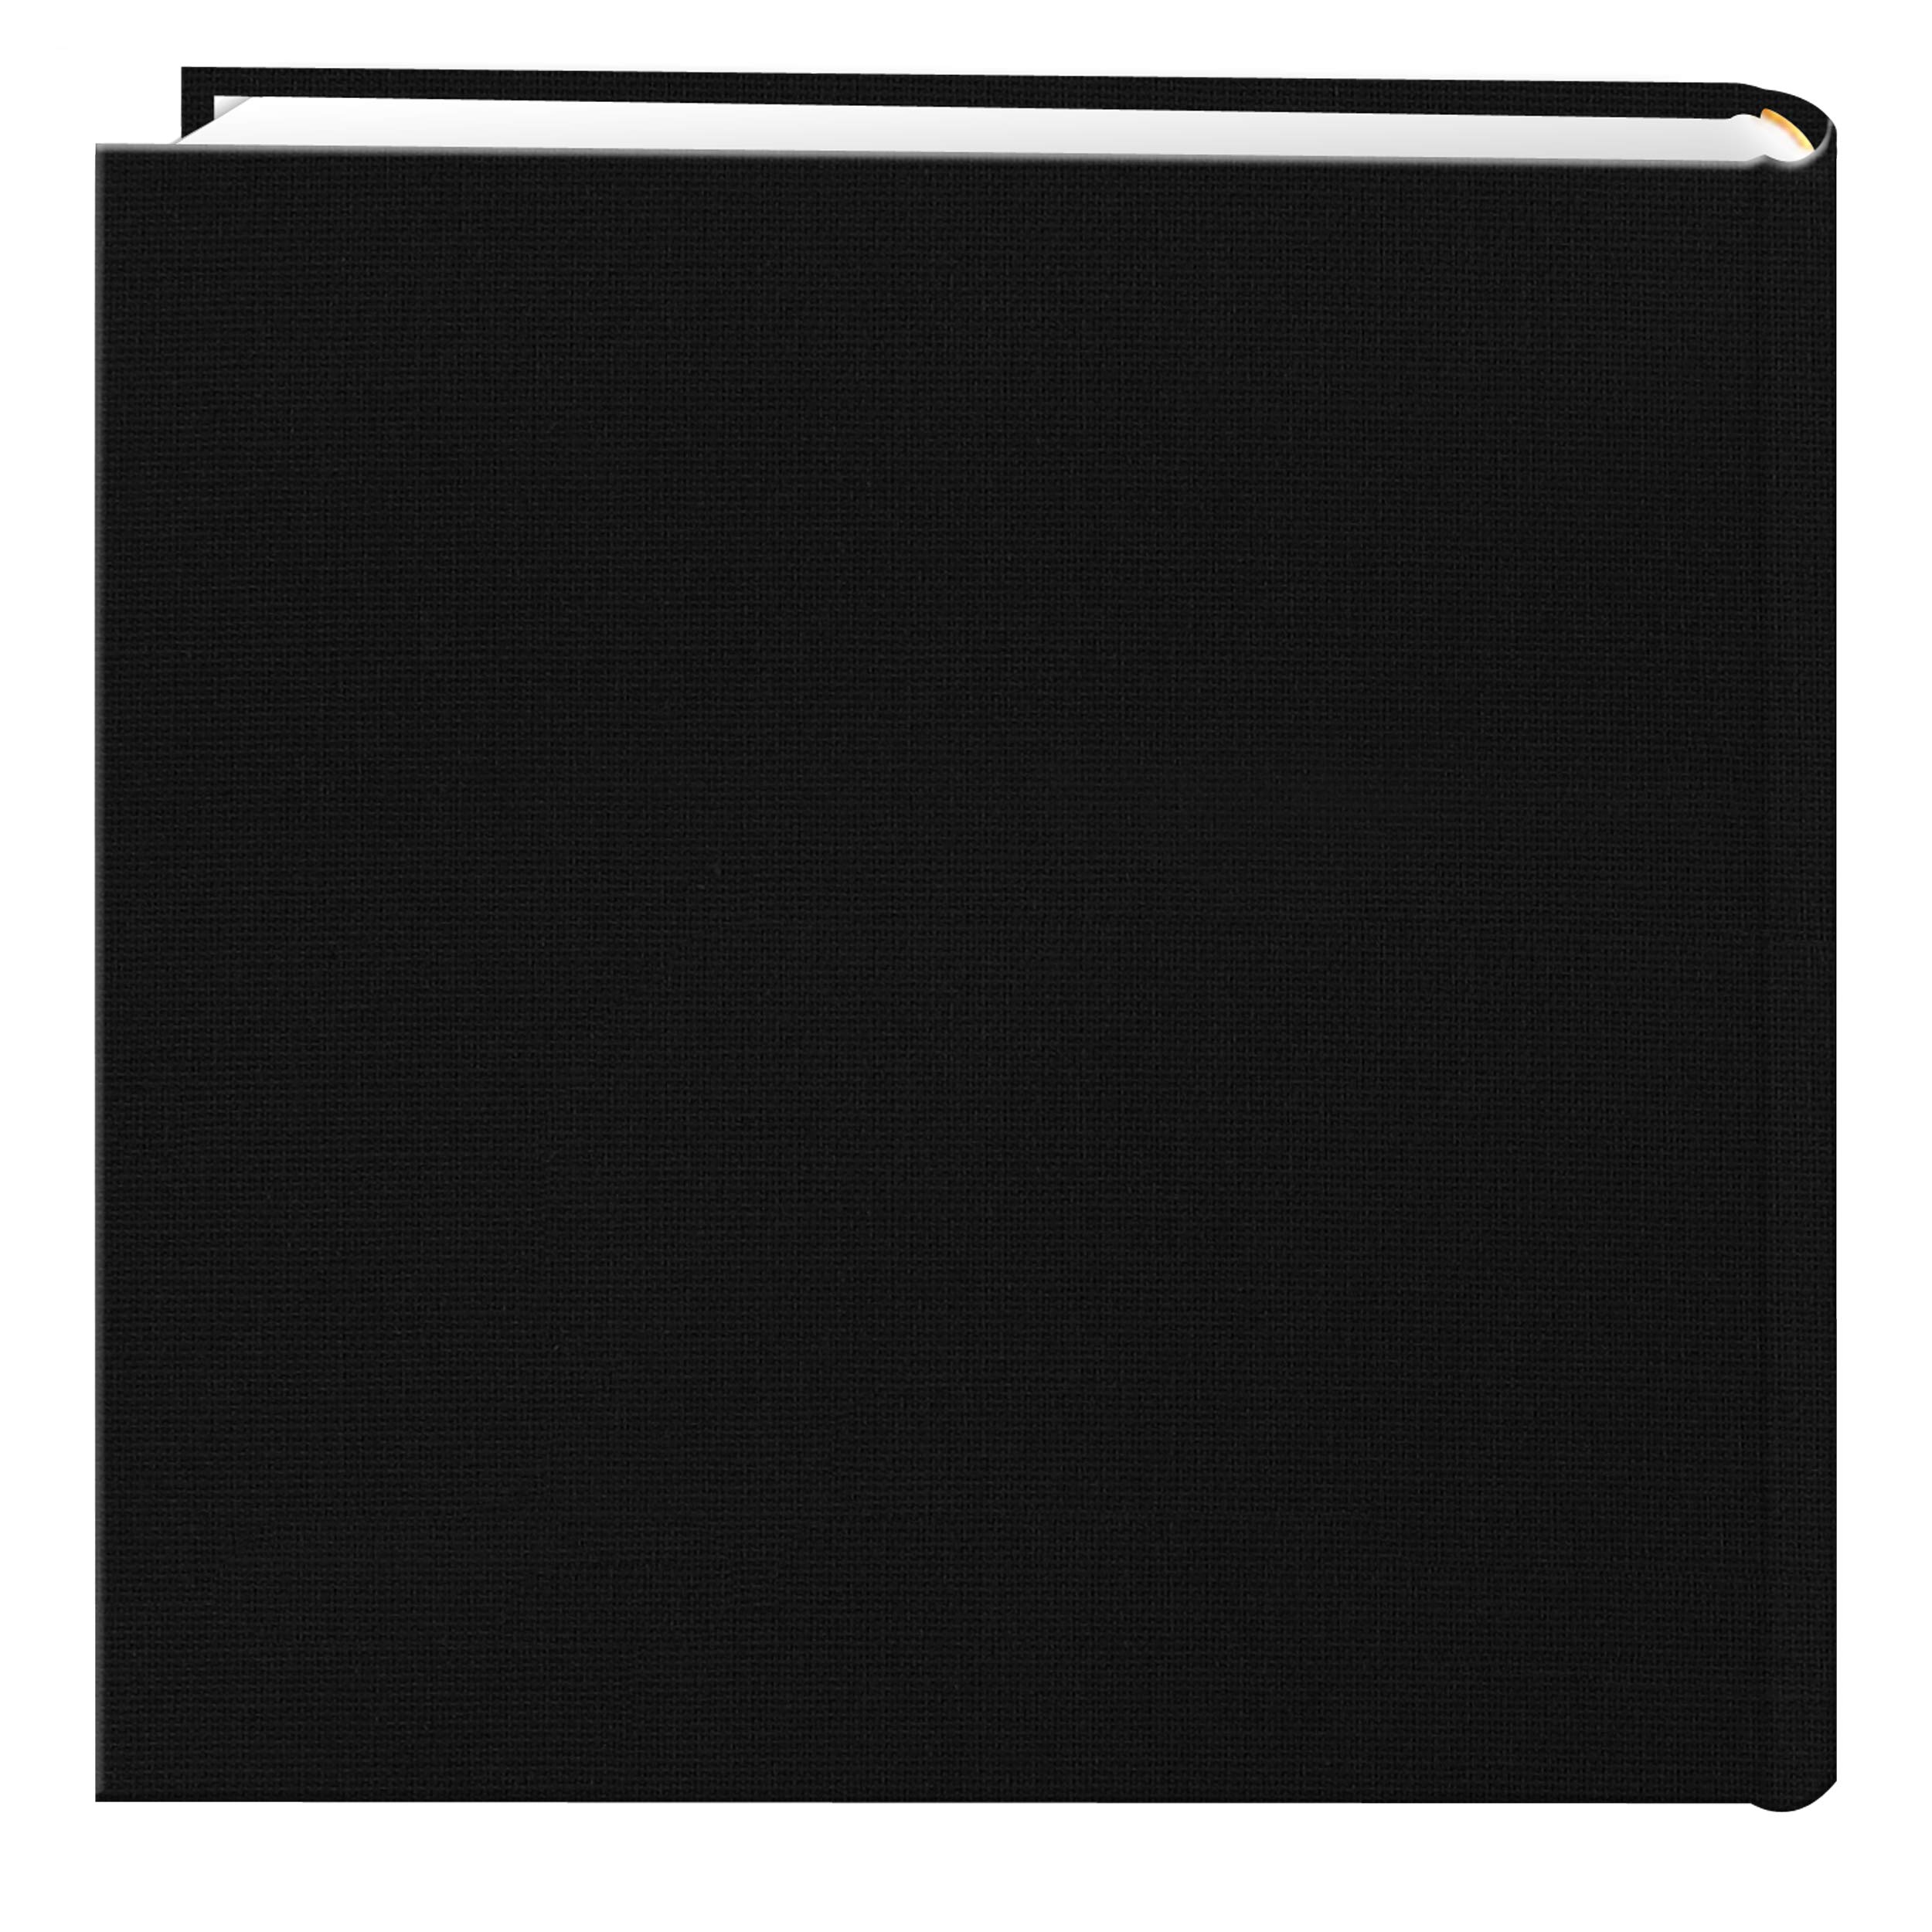 Fabric Frame Cover Photo Album 200 Pockets Hold 4x6 Photos, Deep Black by Pioneer Photo Albums (Image #2)